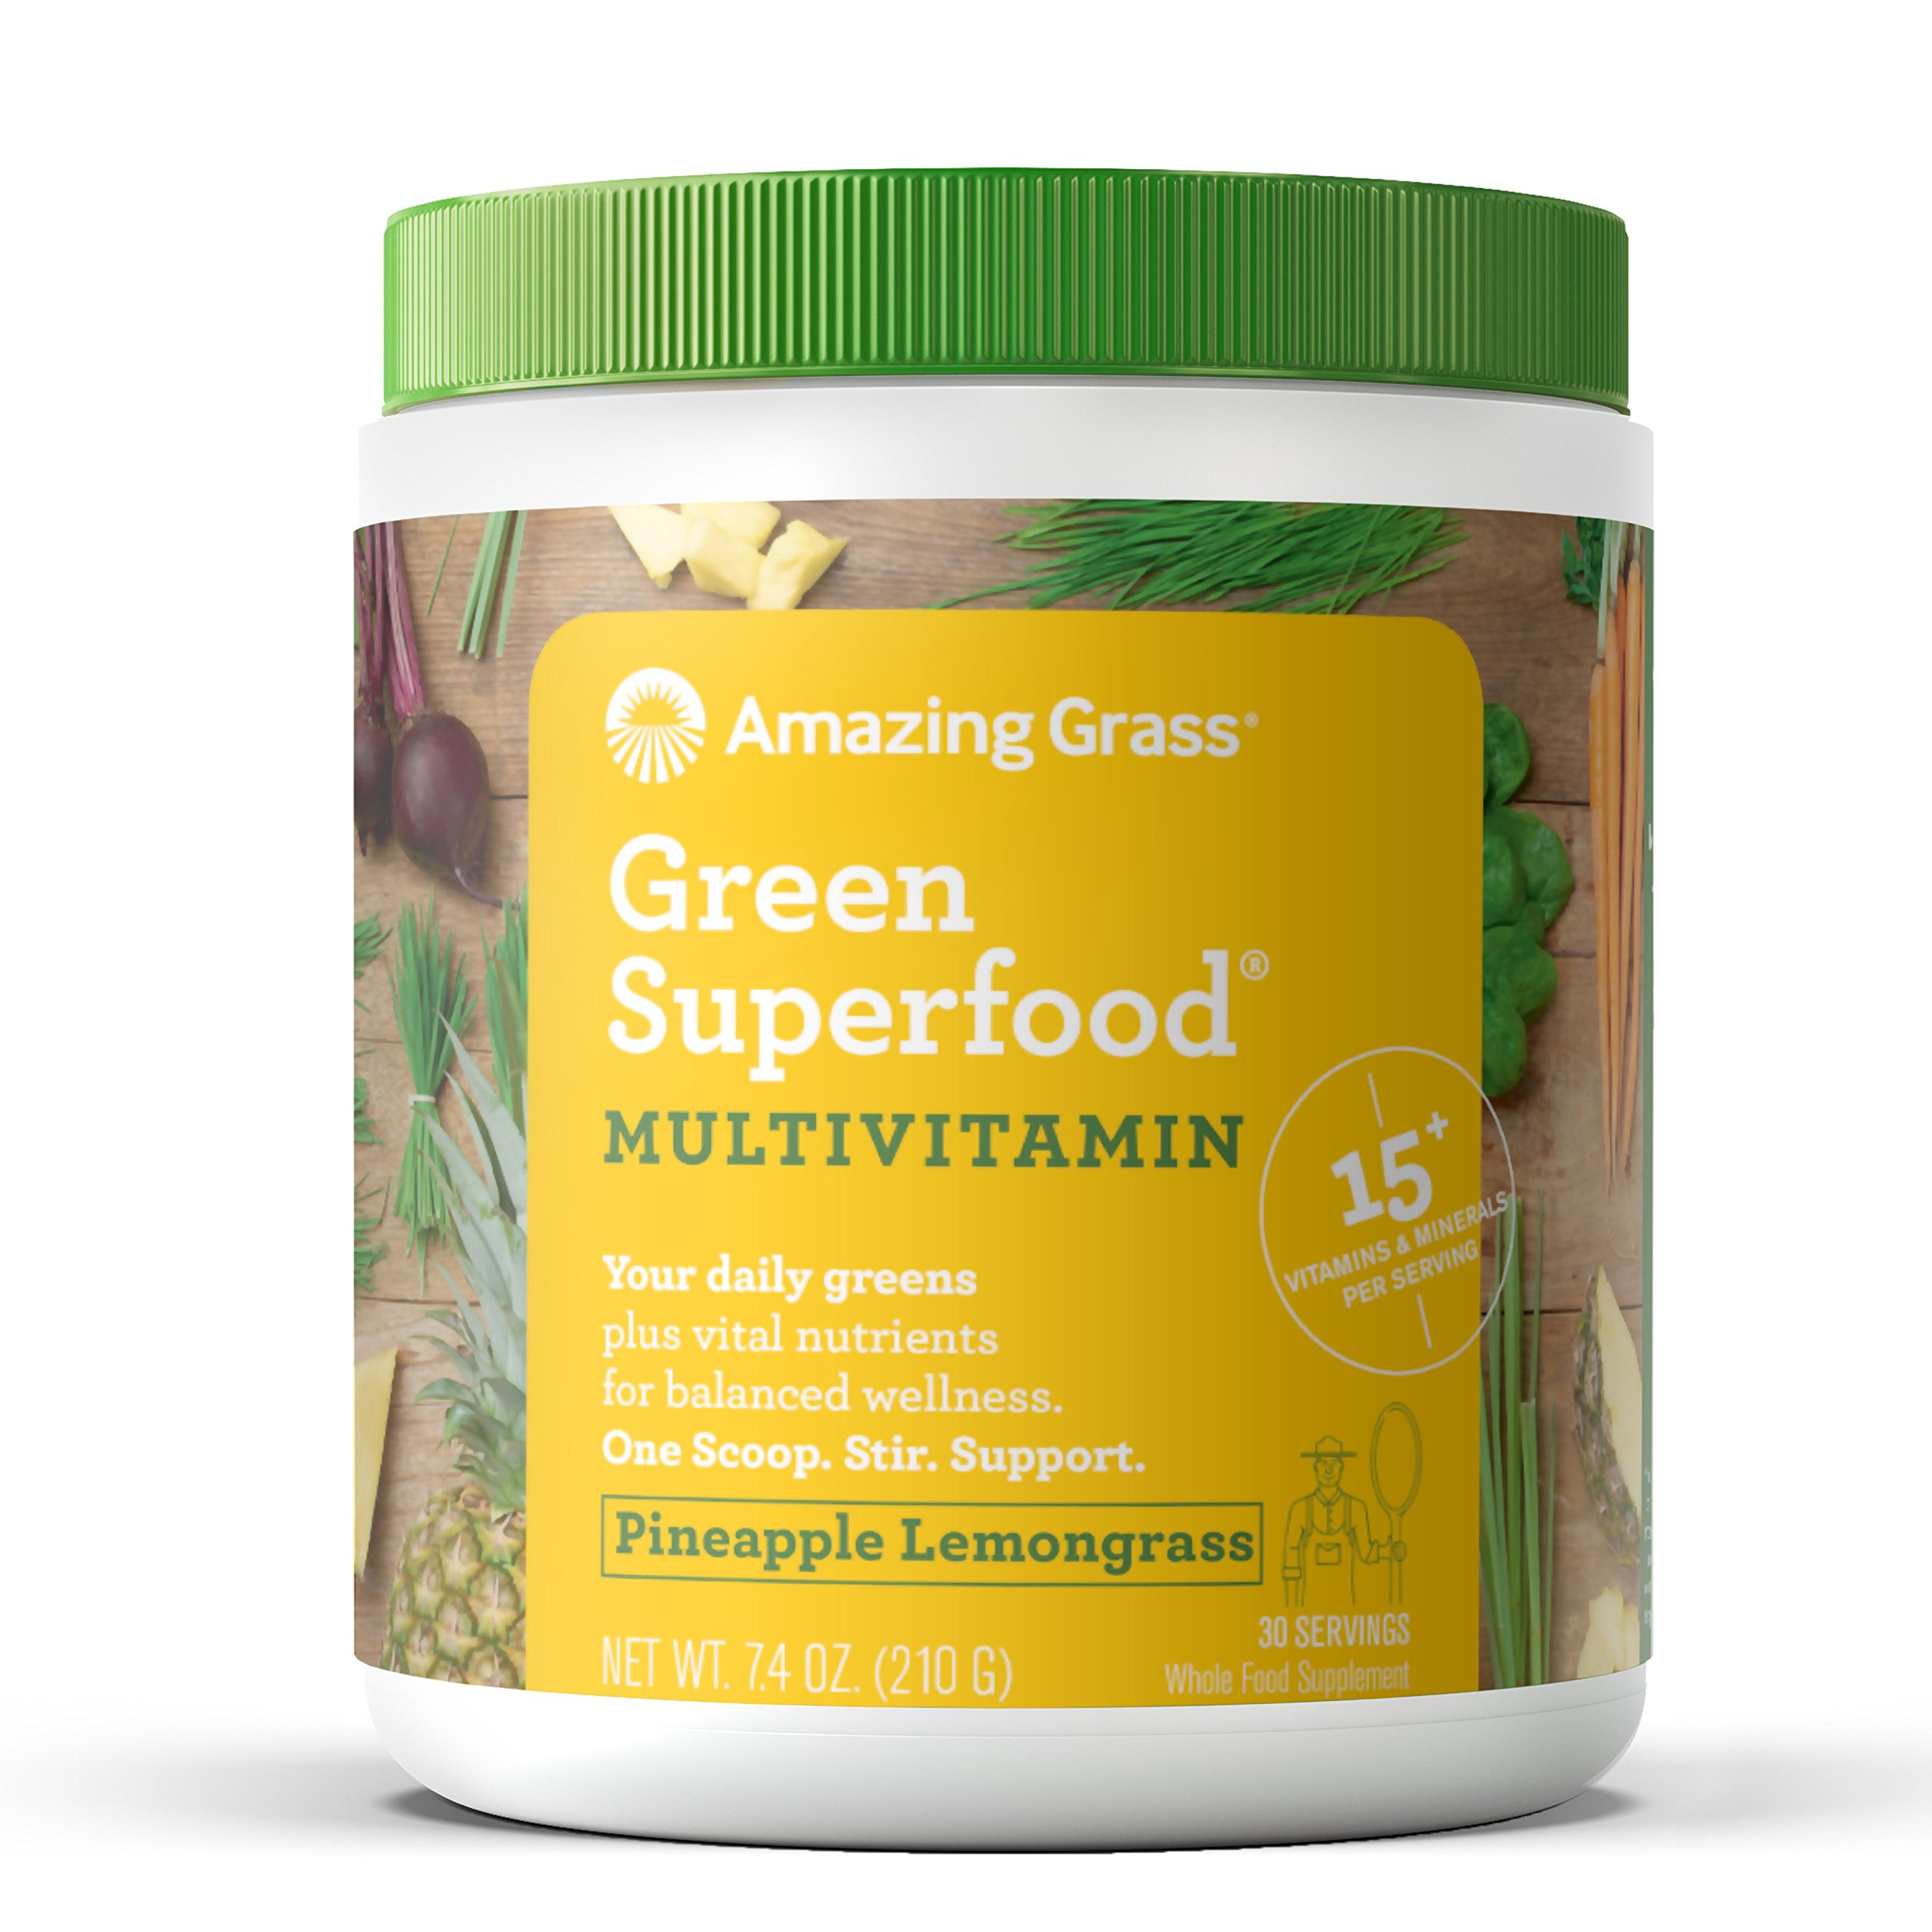 Amazing Grass Green Superfood Multi-Vitamin: Organic Plant Based Multi-Vitamin Powder packed with 15+ Vitamins & Minerals, Pineapple Lemongrass Flavor, 30 Servings by Amazing Grass